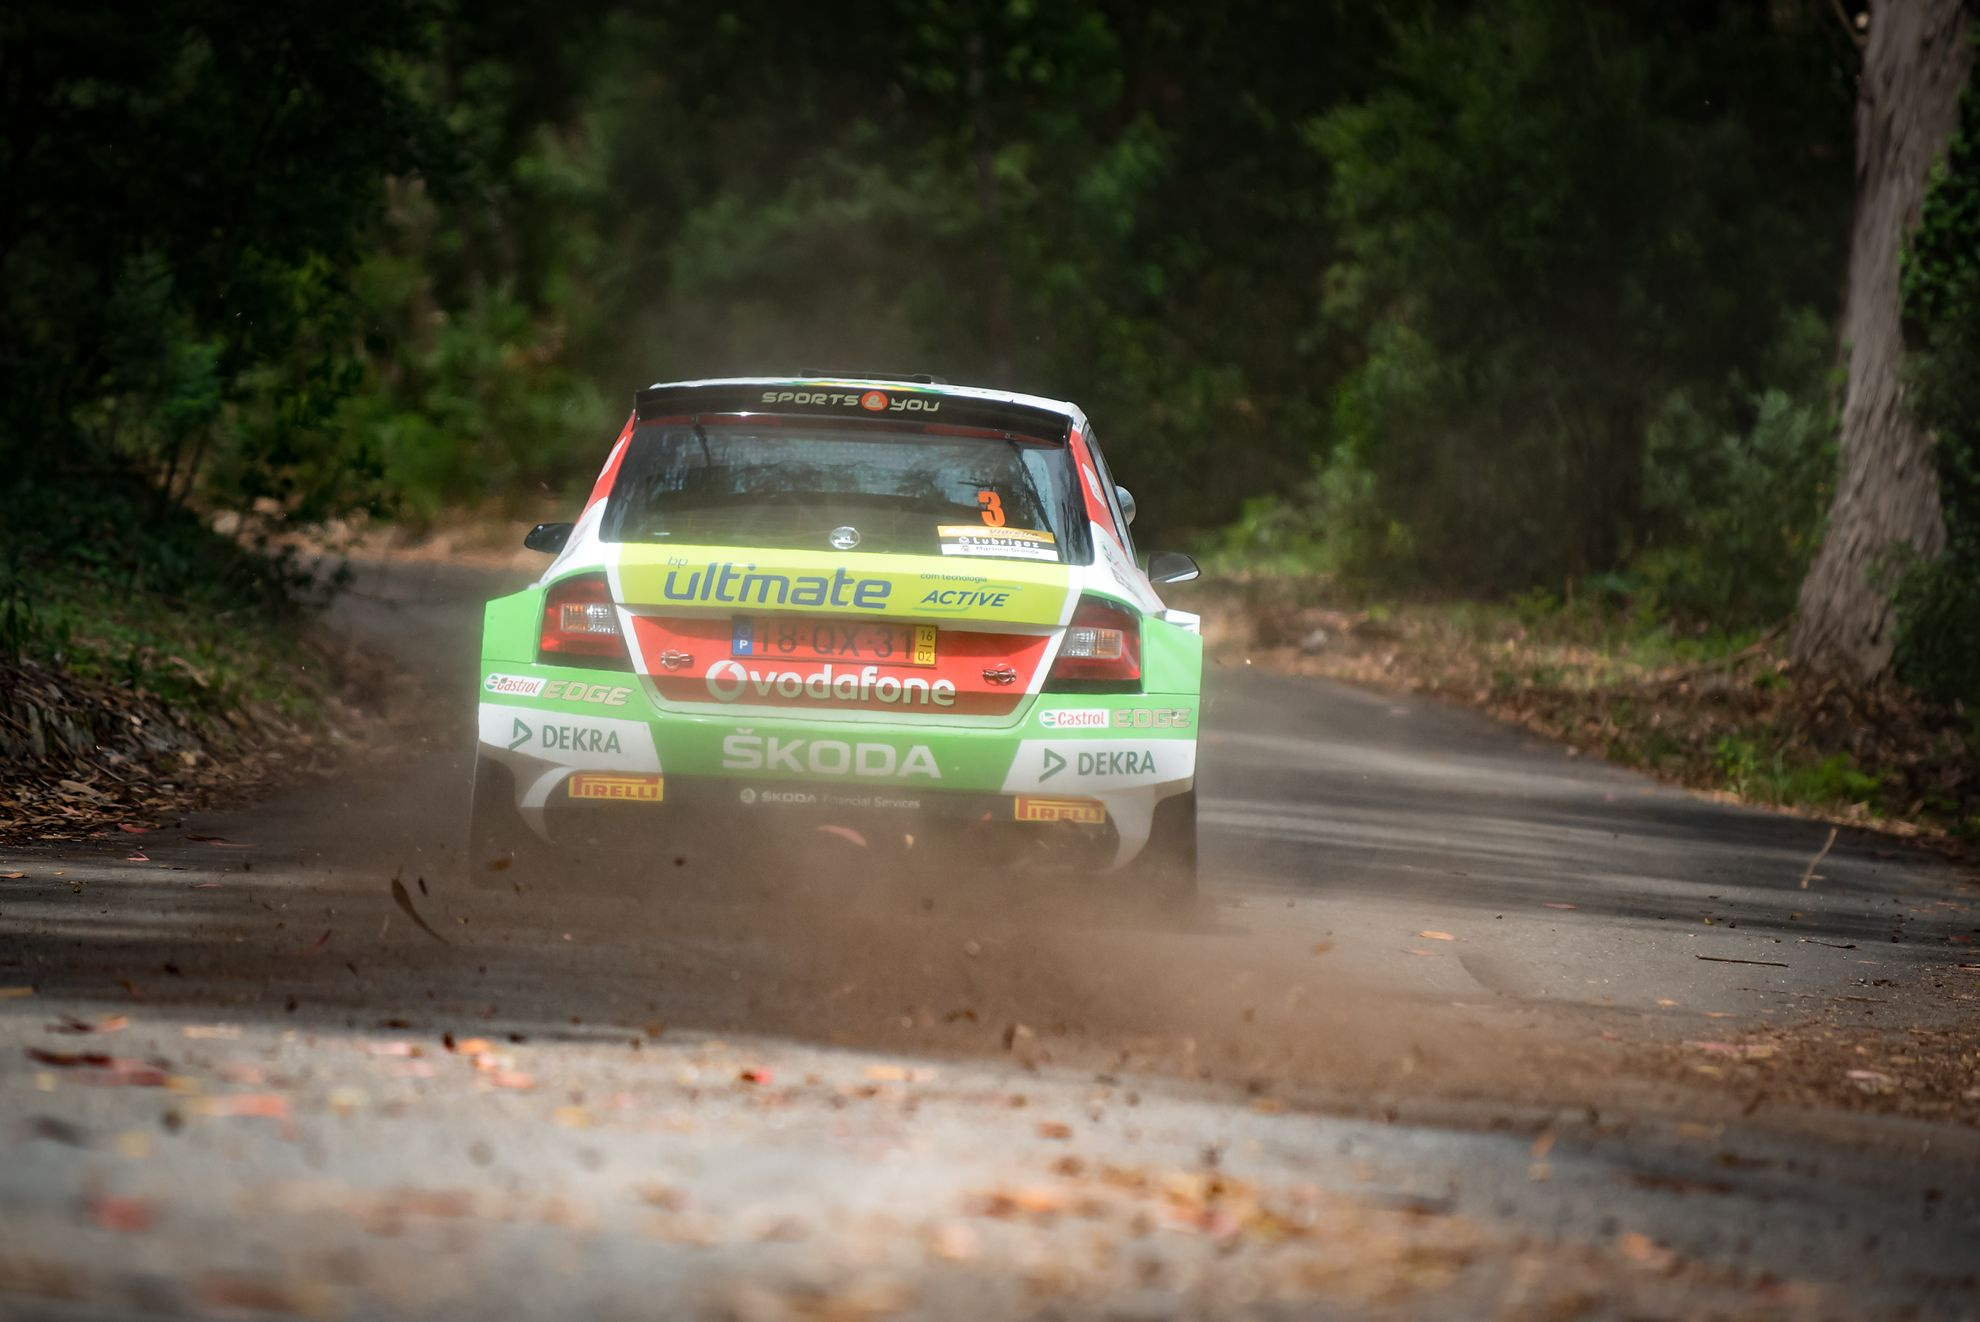 Miguel Barbosa in Skoda Fabia R5 during the 2017 Rally Vidreiro speeding inside the woods.